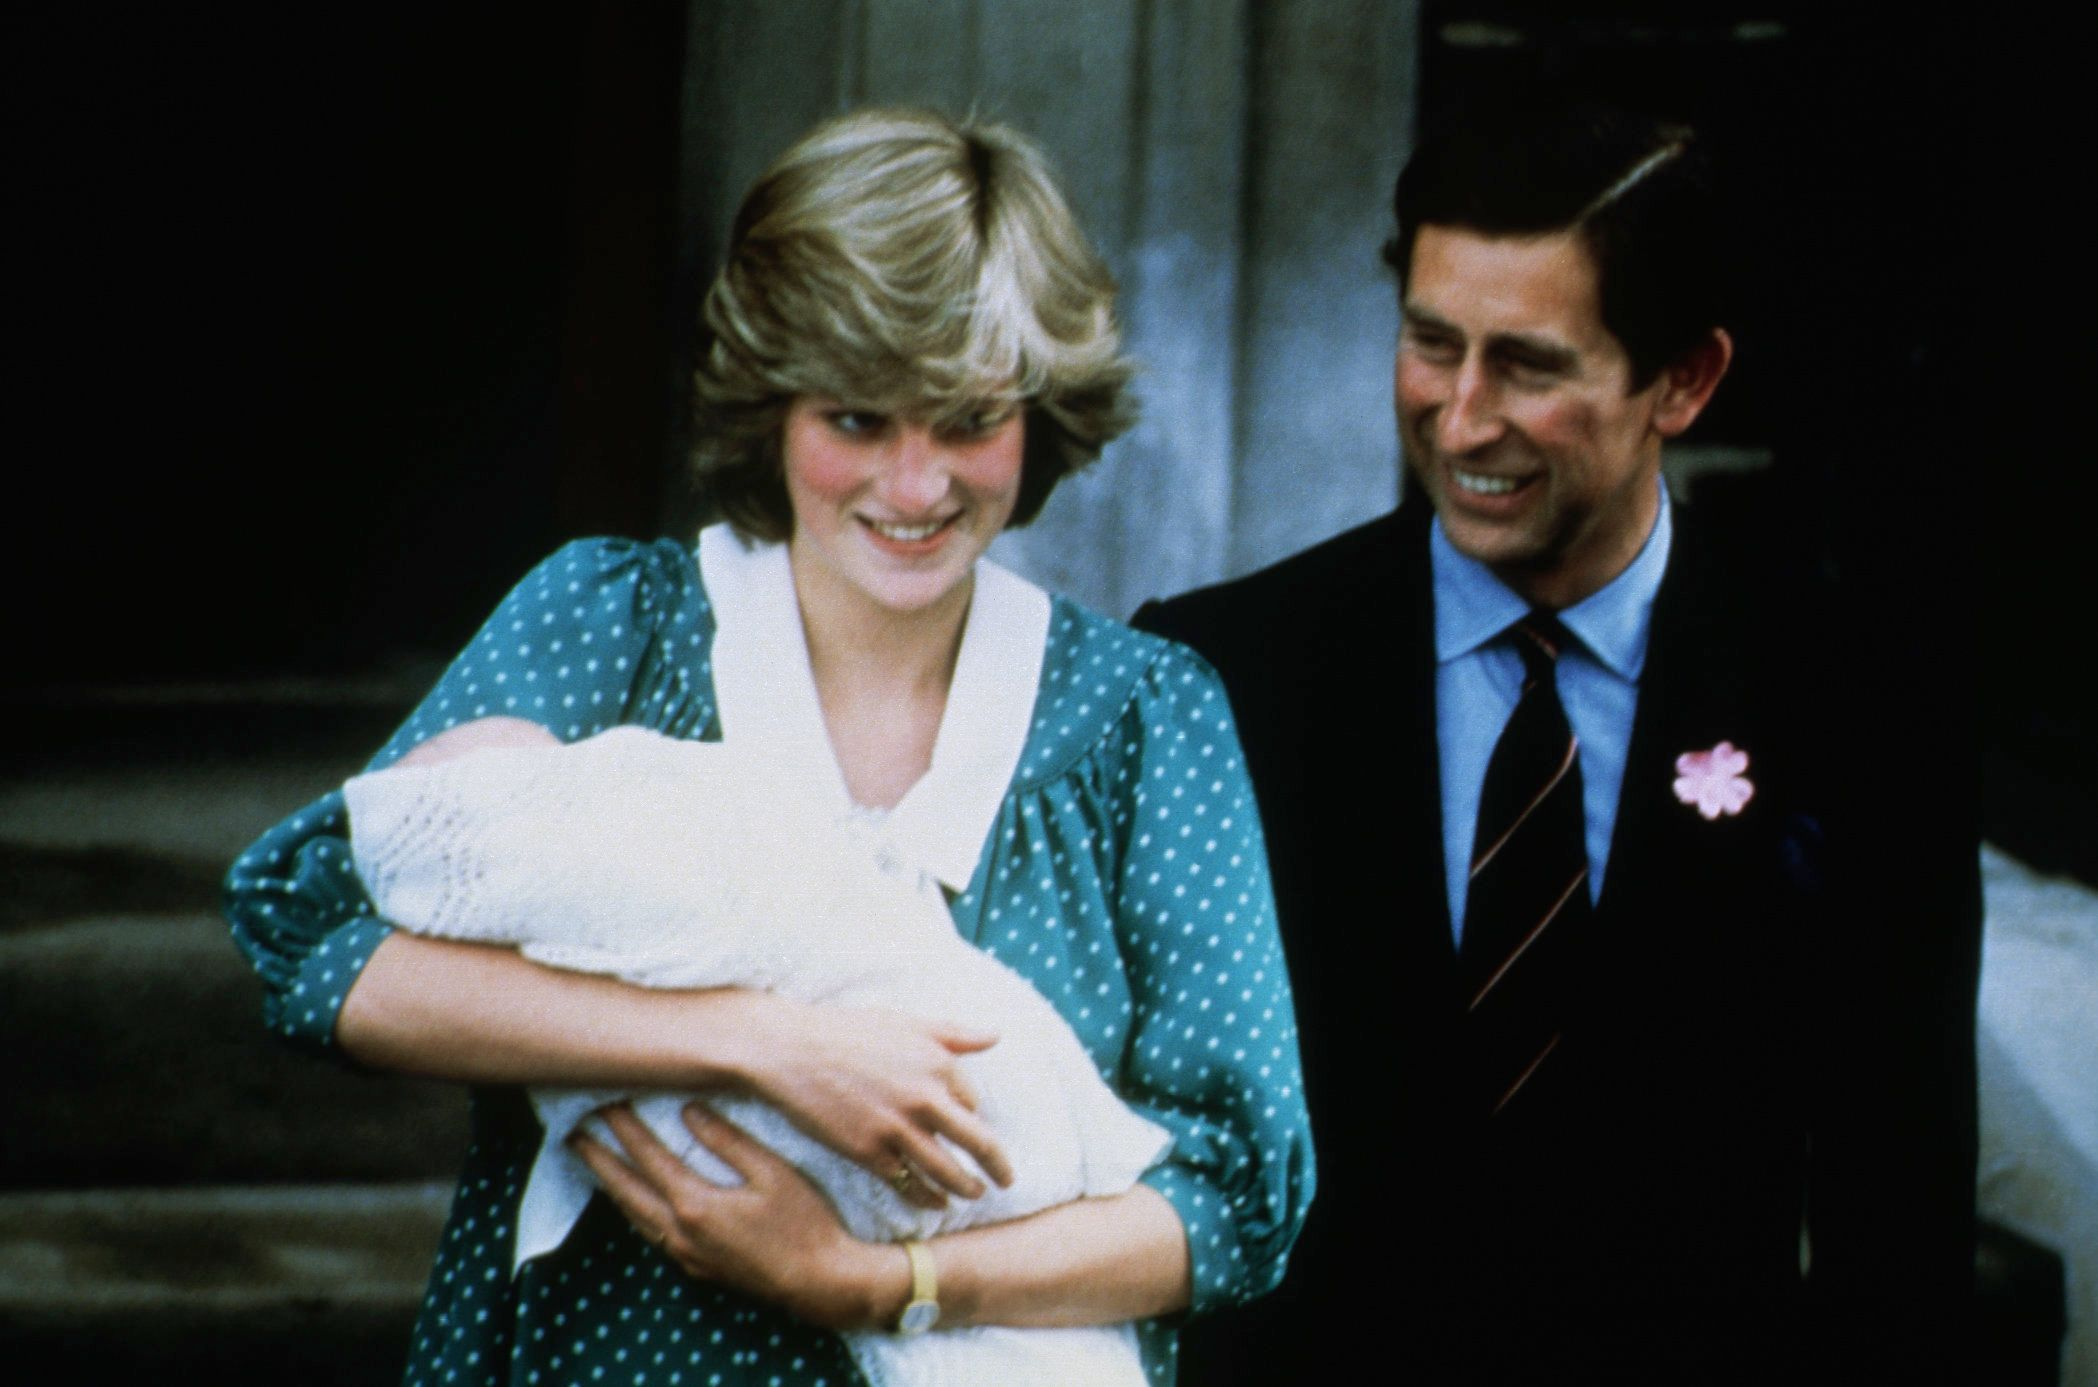 """Charles marriedLady Diana Spencer, who became princess of Wales and was known as the """"people's princess"""" for her charit"""